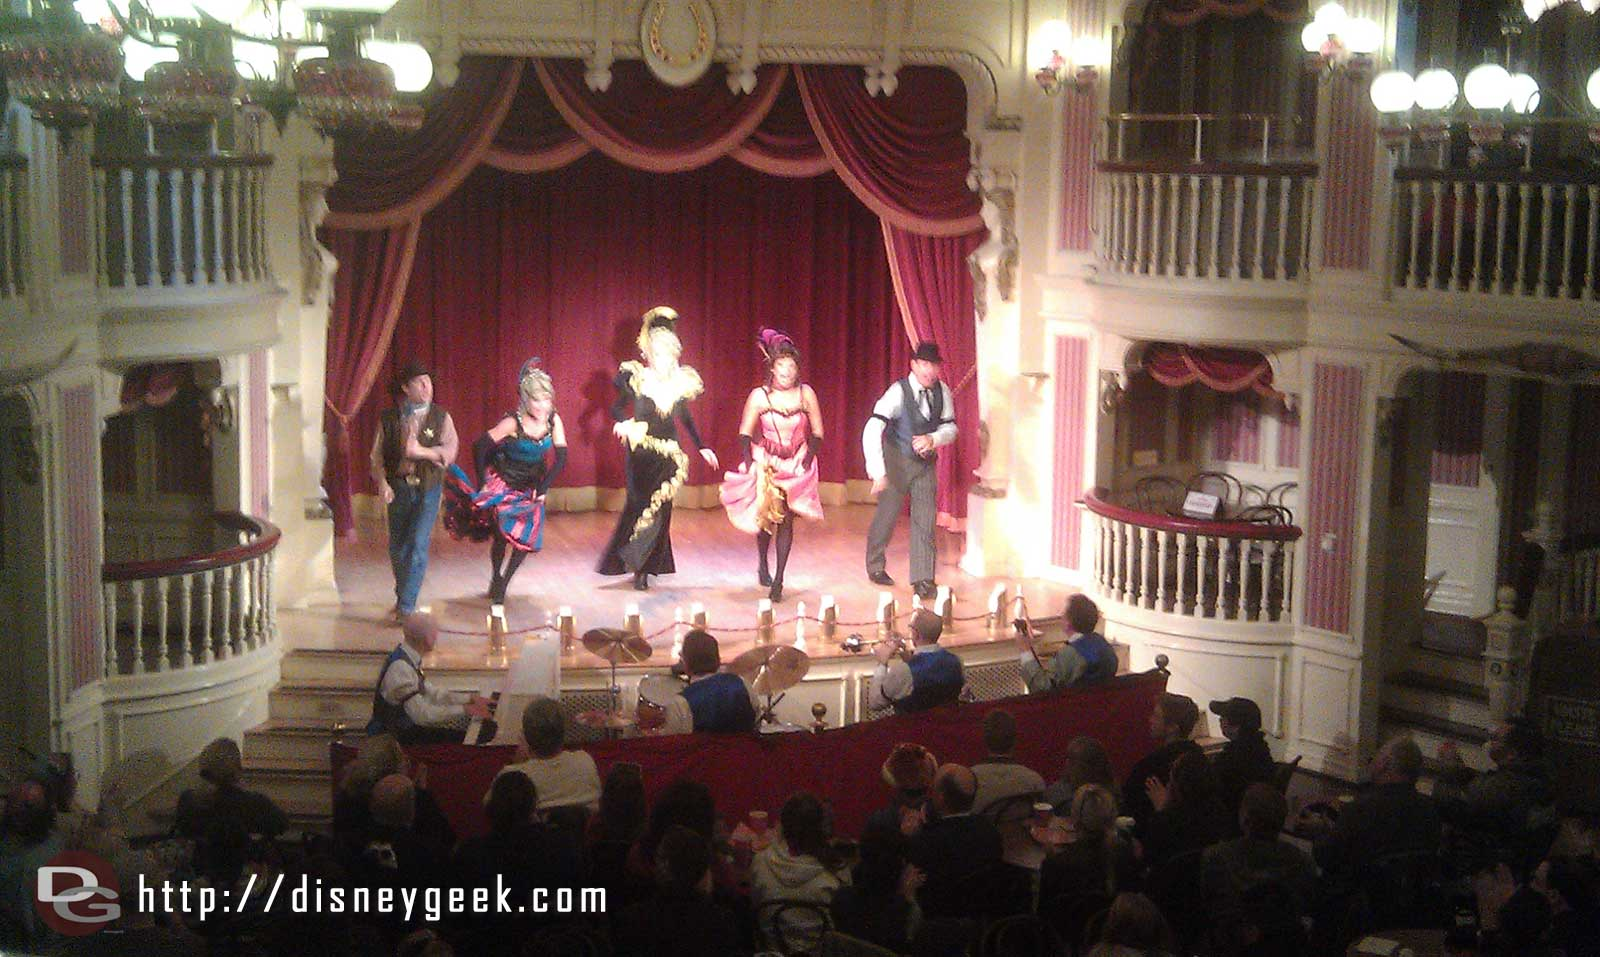 One more Golden Horseshoe Picture, better pics and videos in tomorrows update.